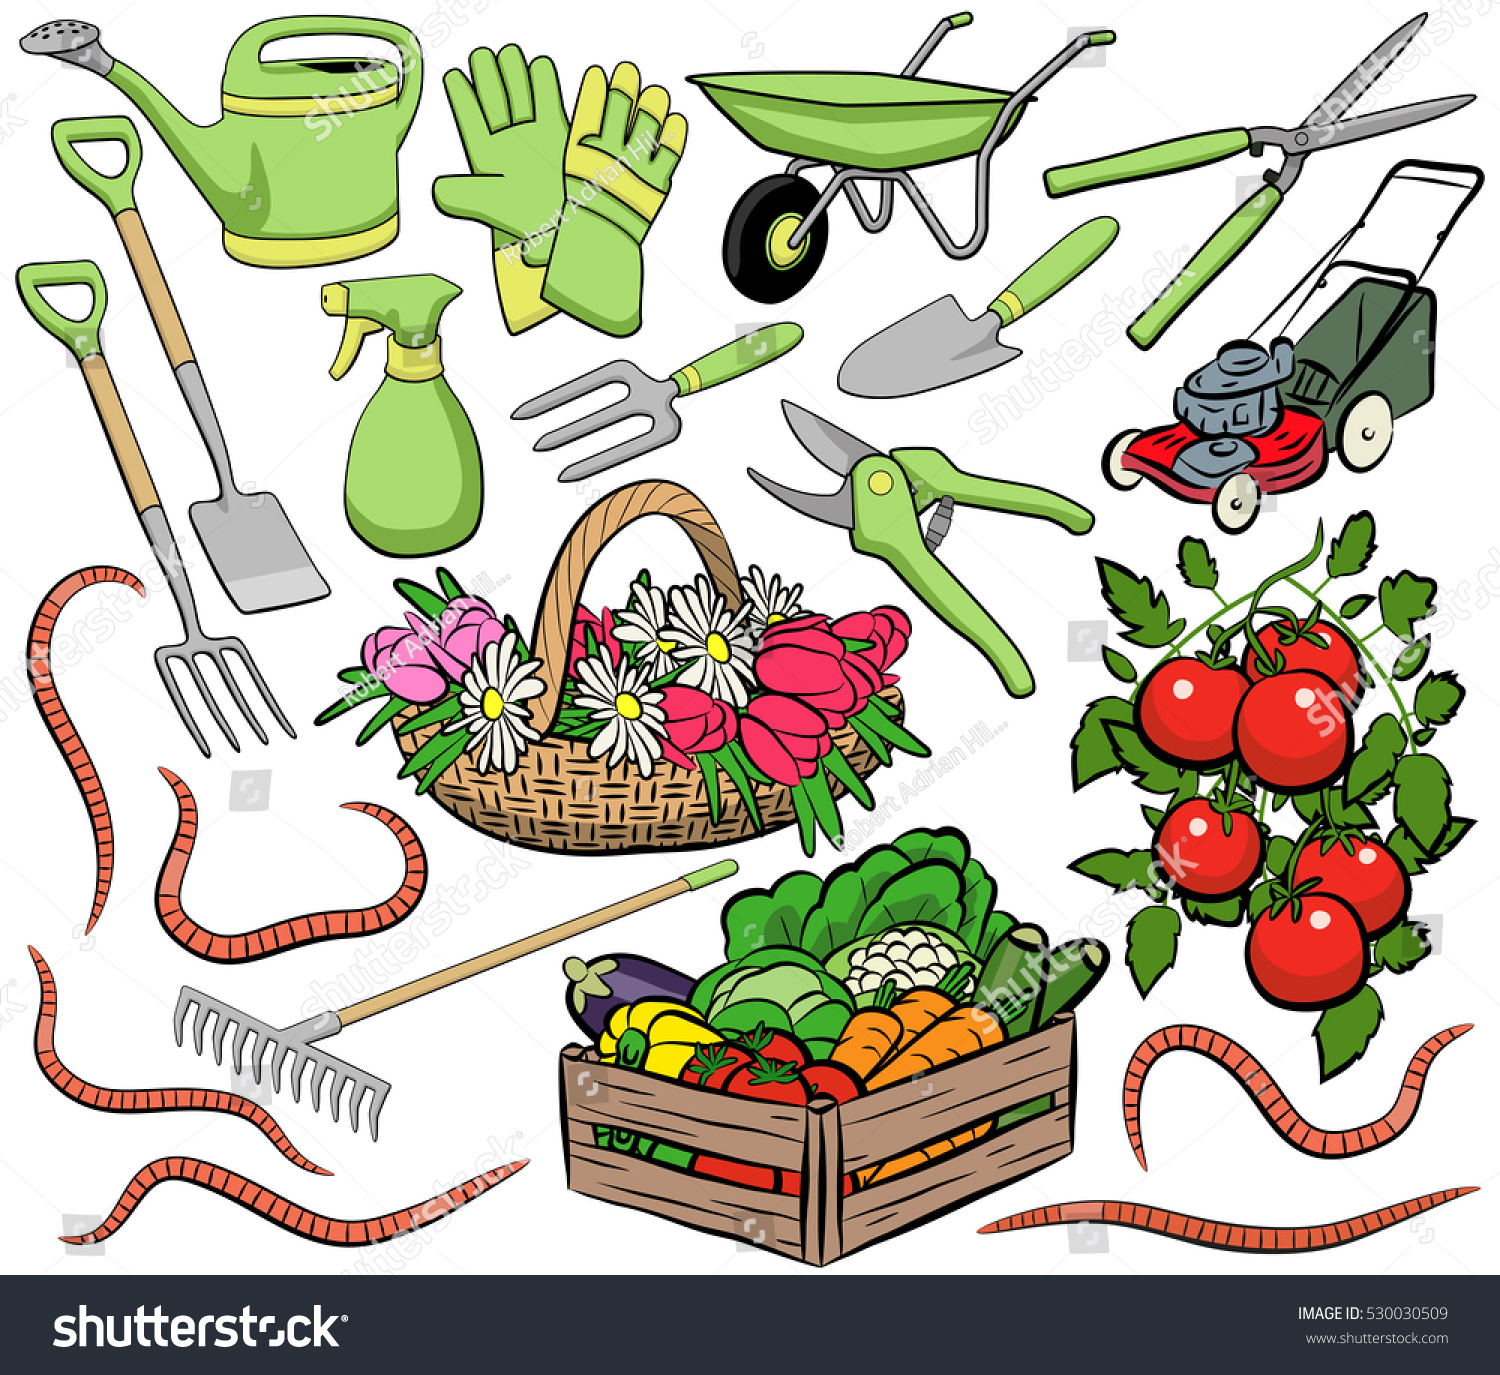 stock vector set of vector gardening clip art including tools produce and worms